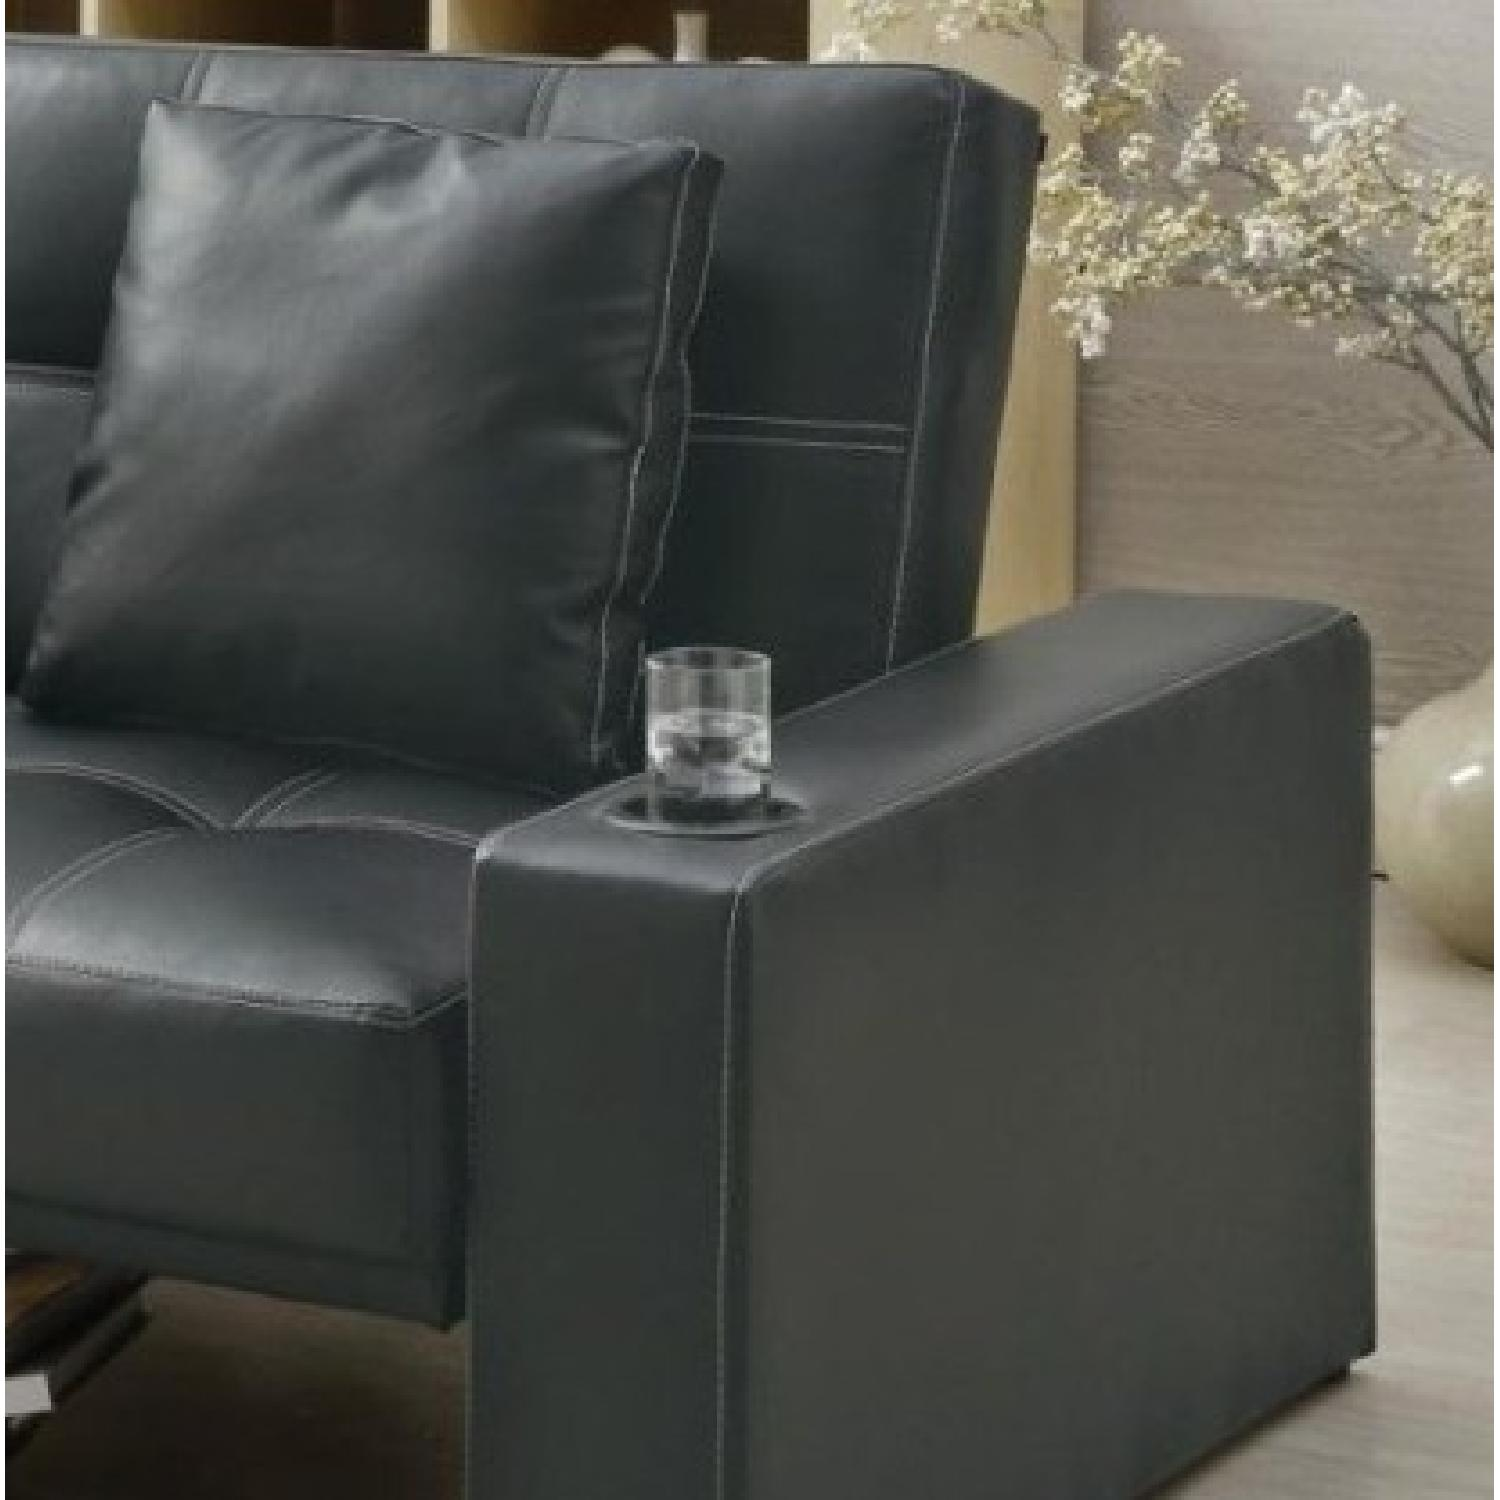 Sofabed in Black w/ Armrest Cupholders & 2 Accent Pillows - image-3